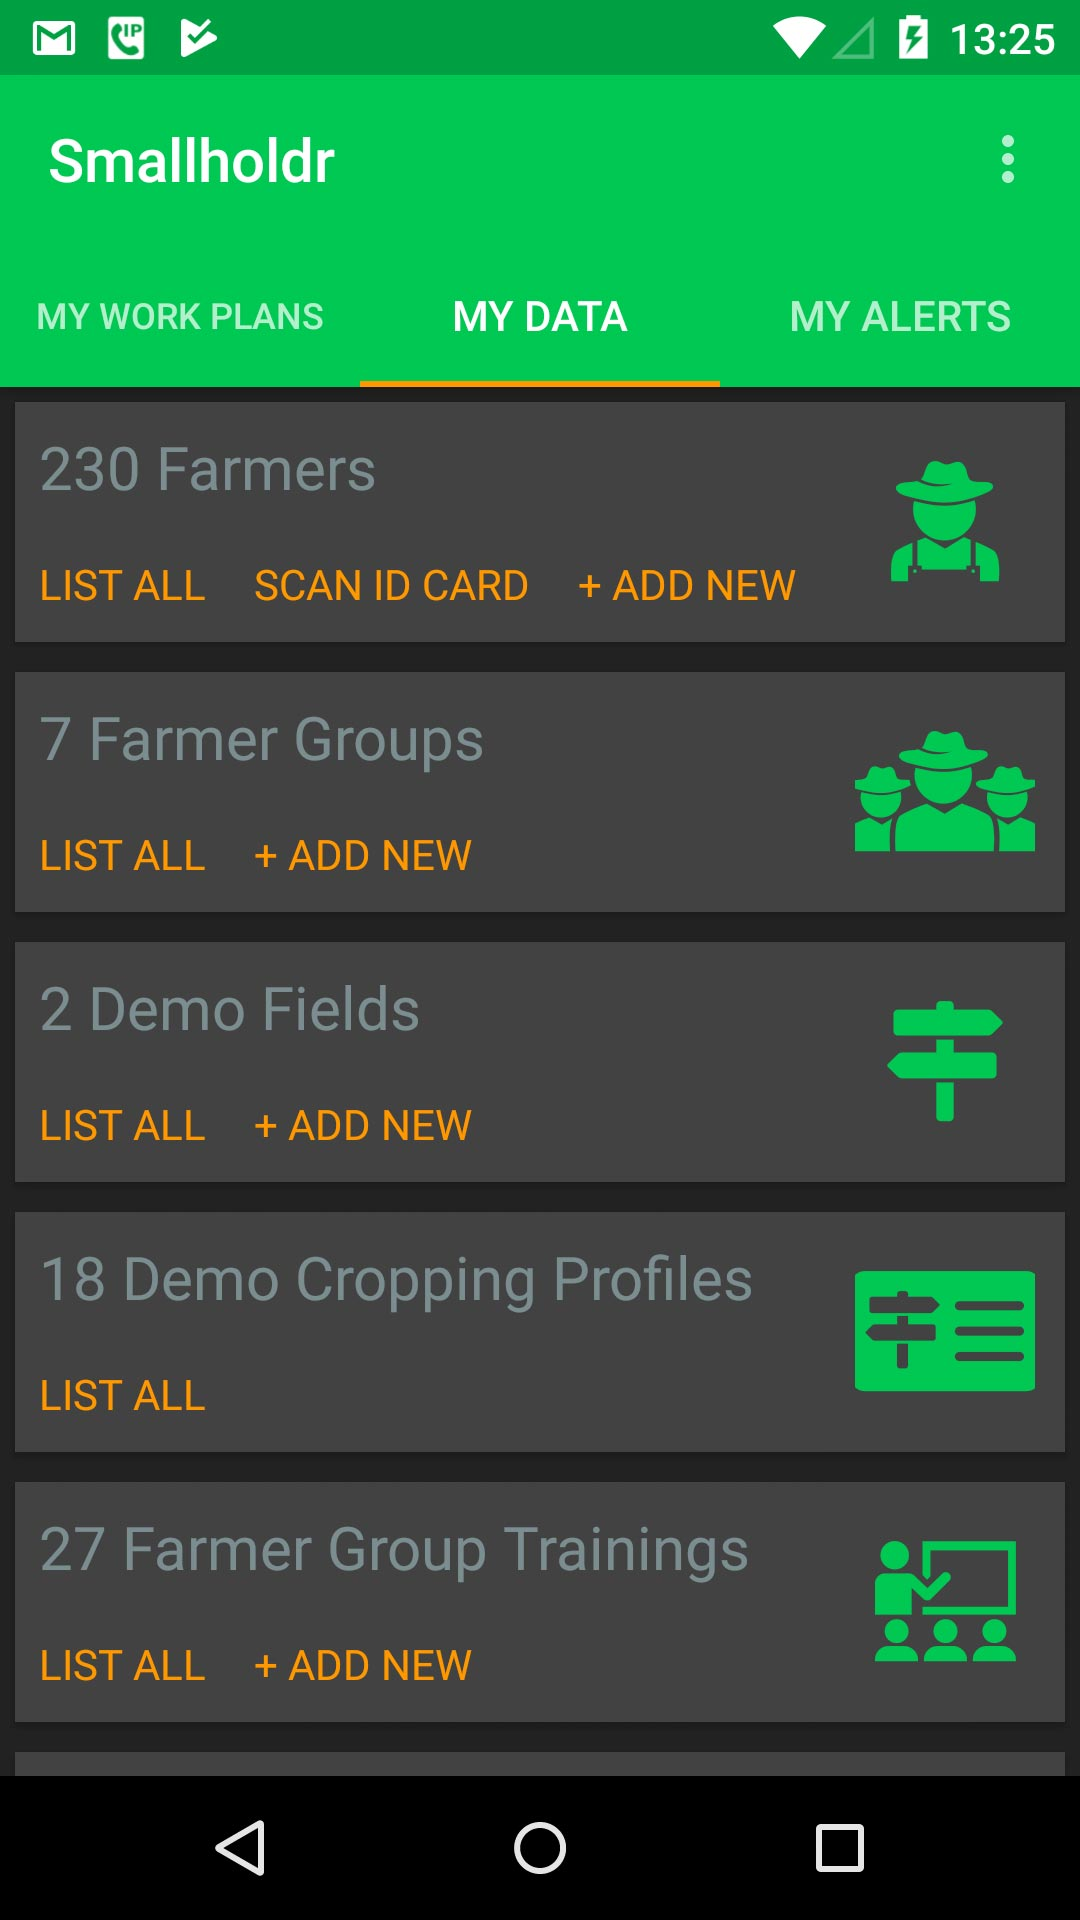 A typical Smallholdr mobile app screen :  Empowers the extension worker with key data at their fingertips.